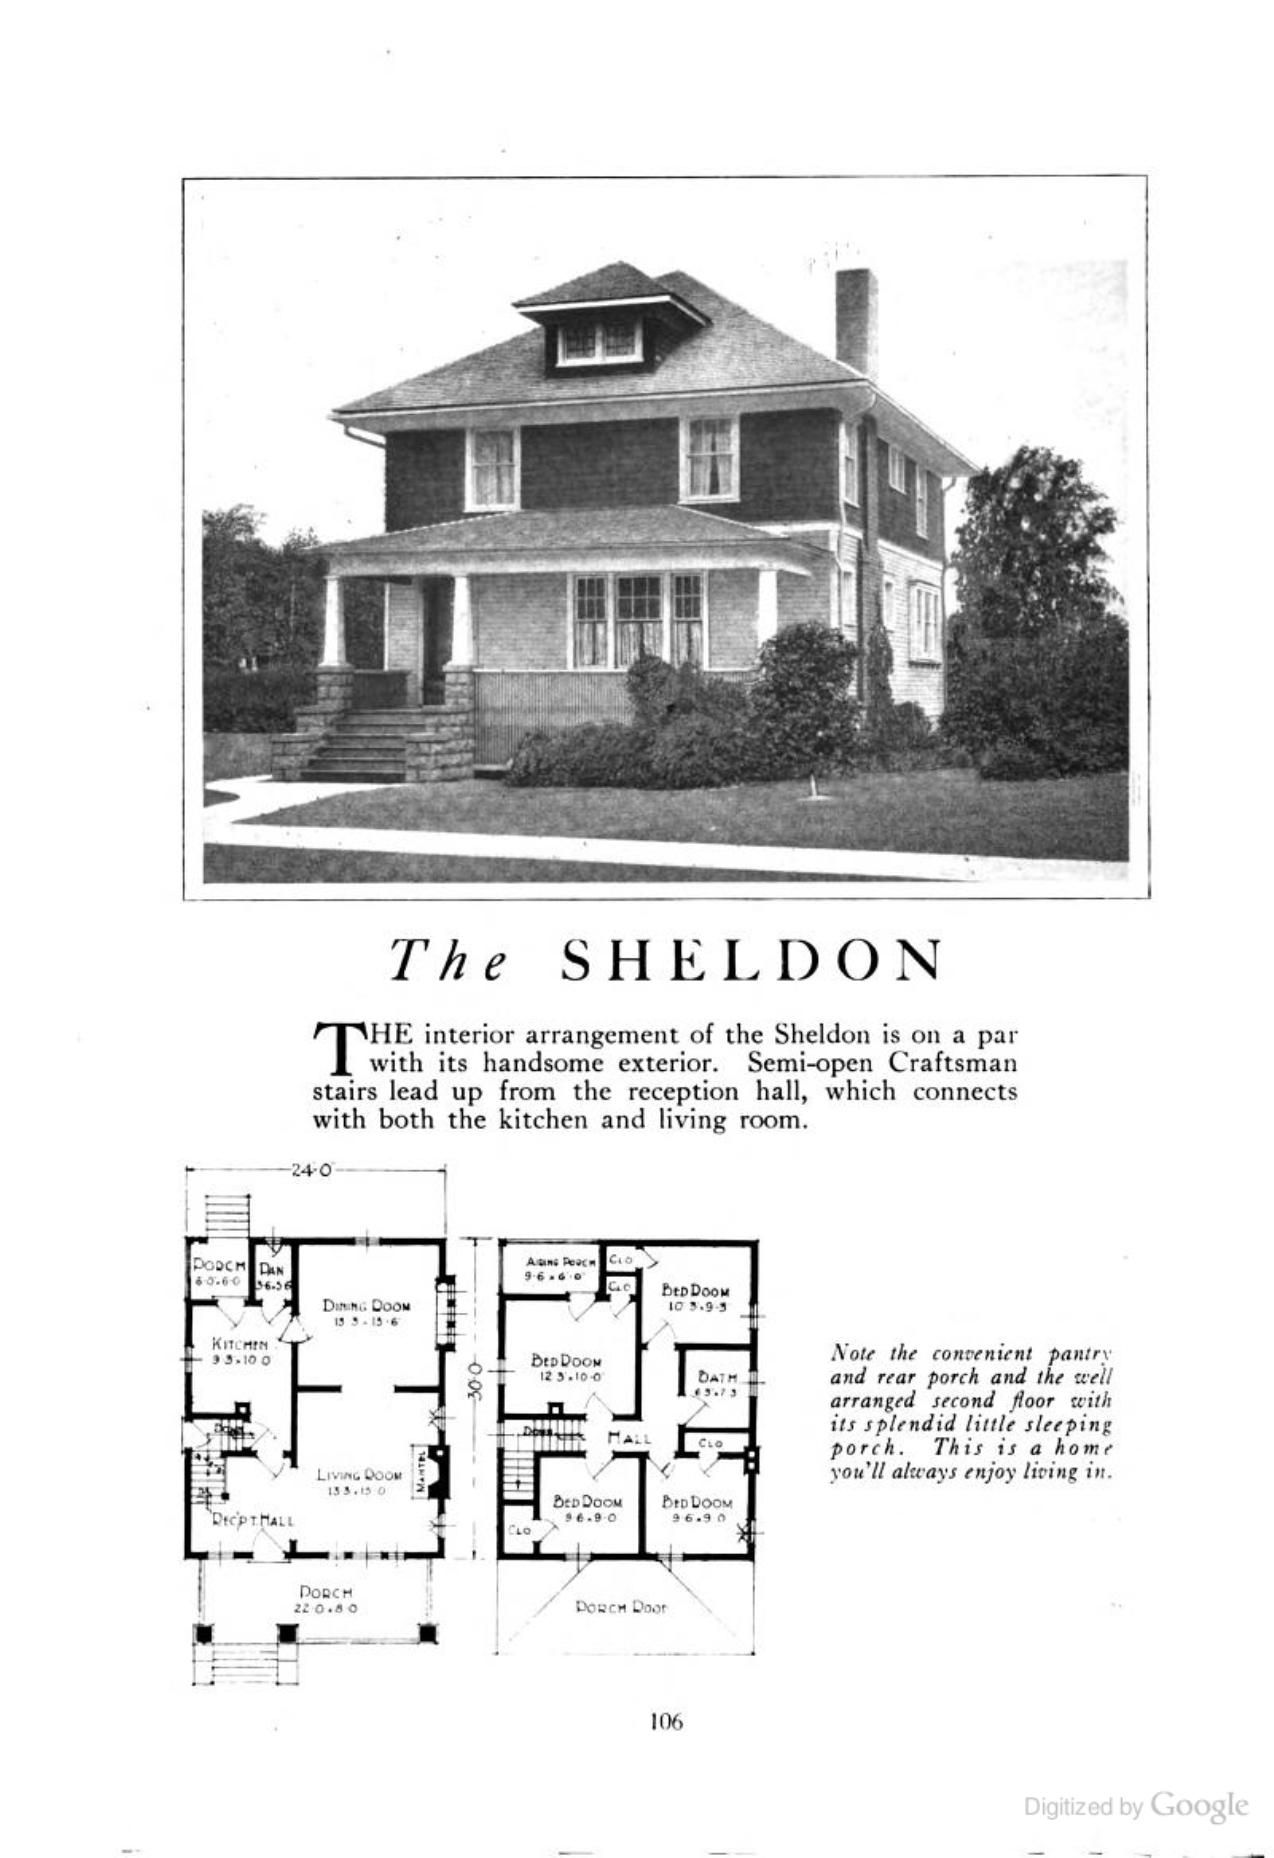 Four Squar House Design Of 1900s: The Sheldon (an American Foursquare Kit House/house Plan